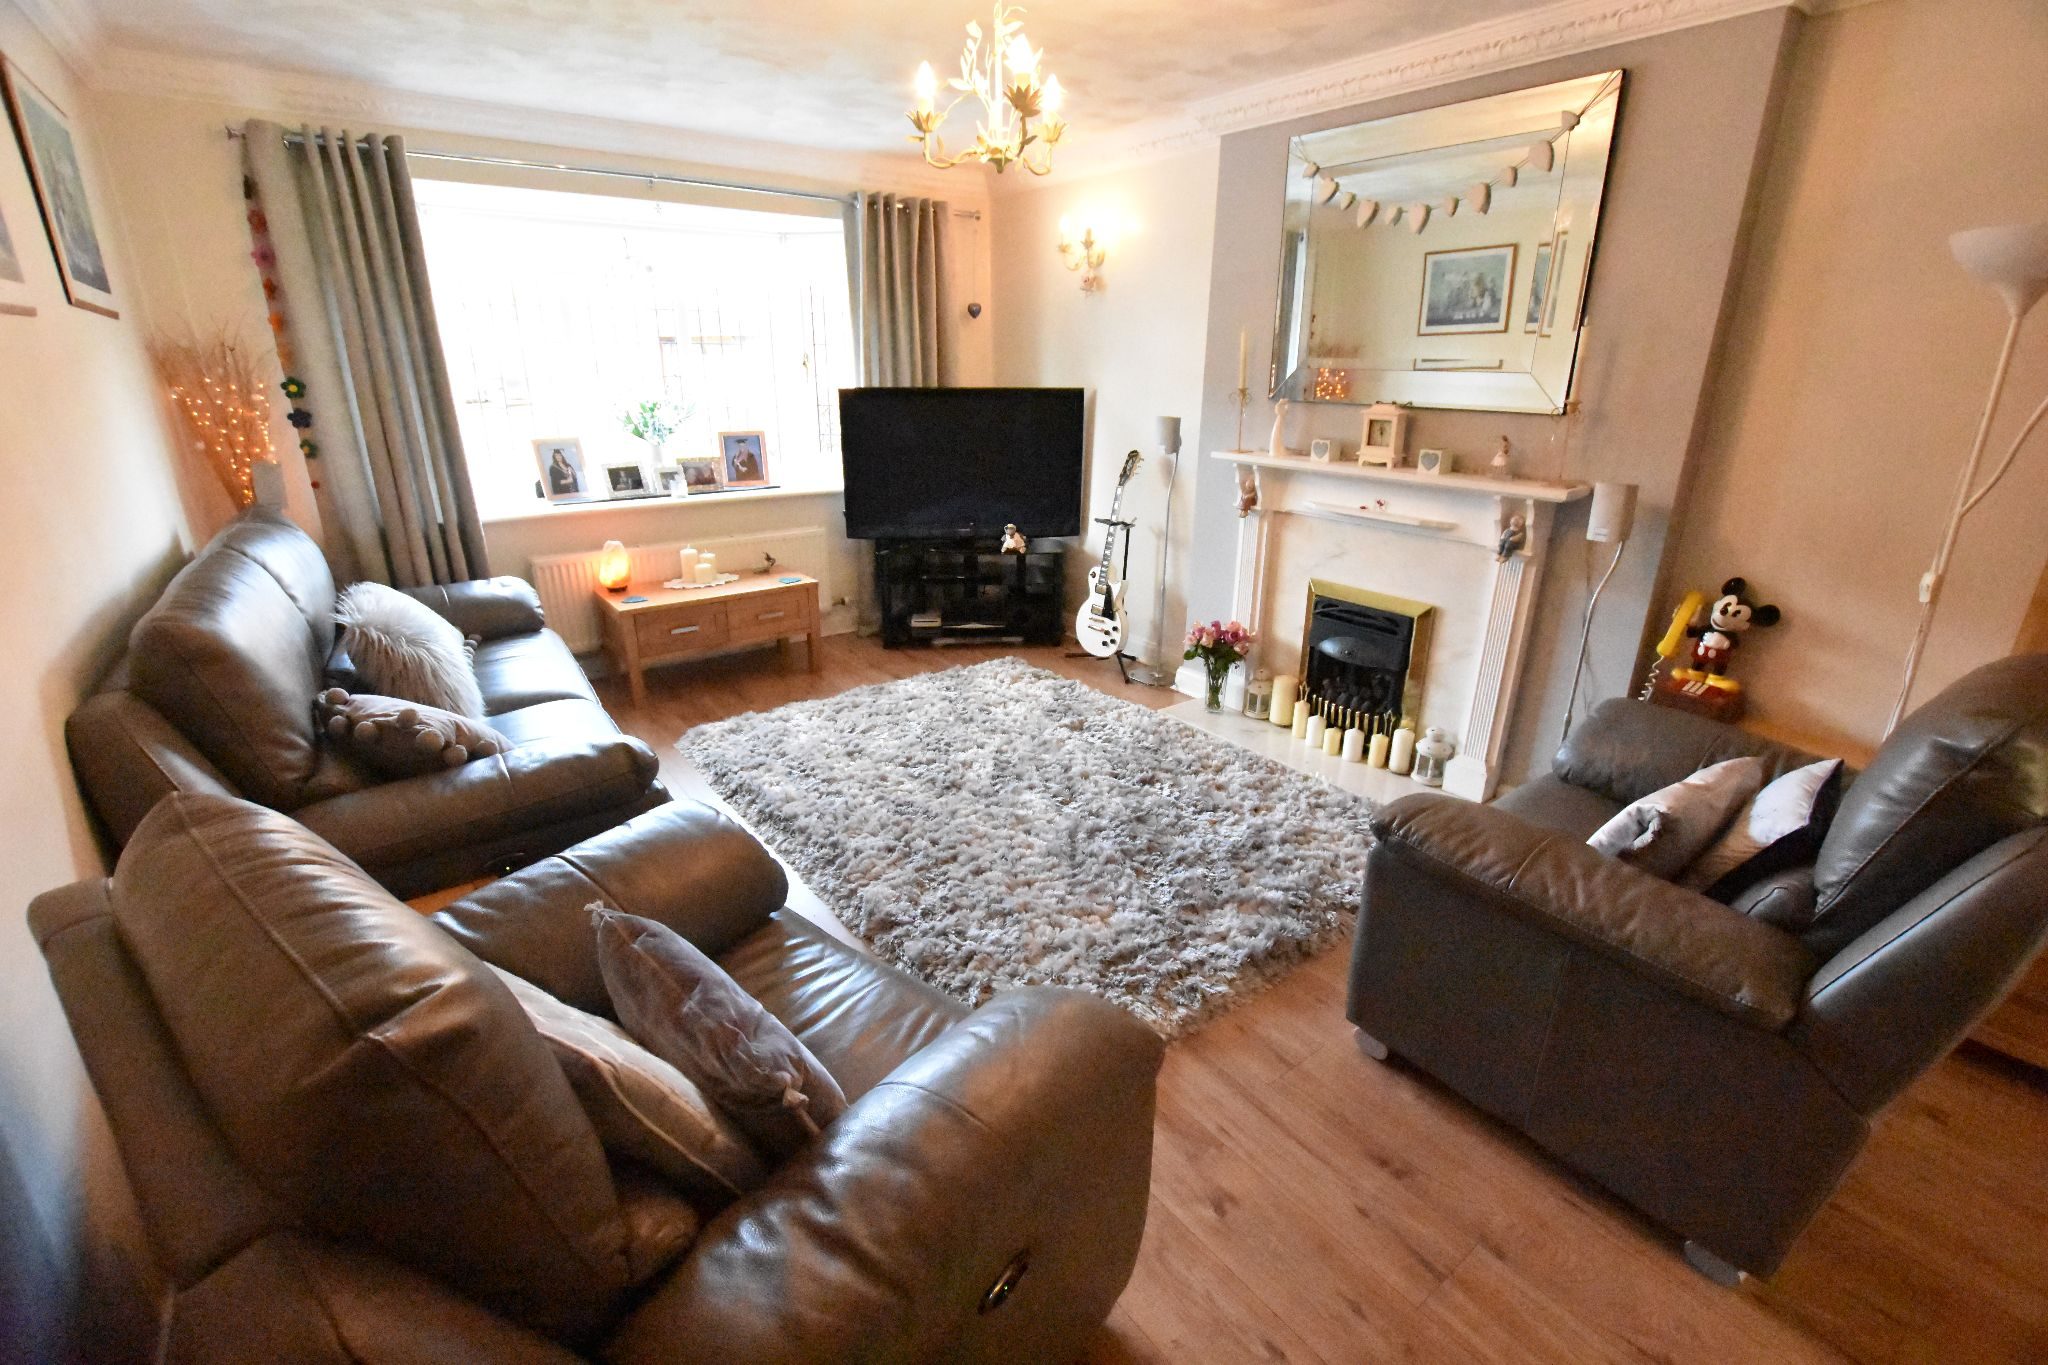 4 bedroom detached house Sold STC in Lytham St. Annes - Lounge